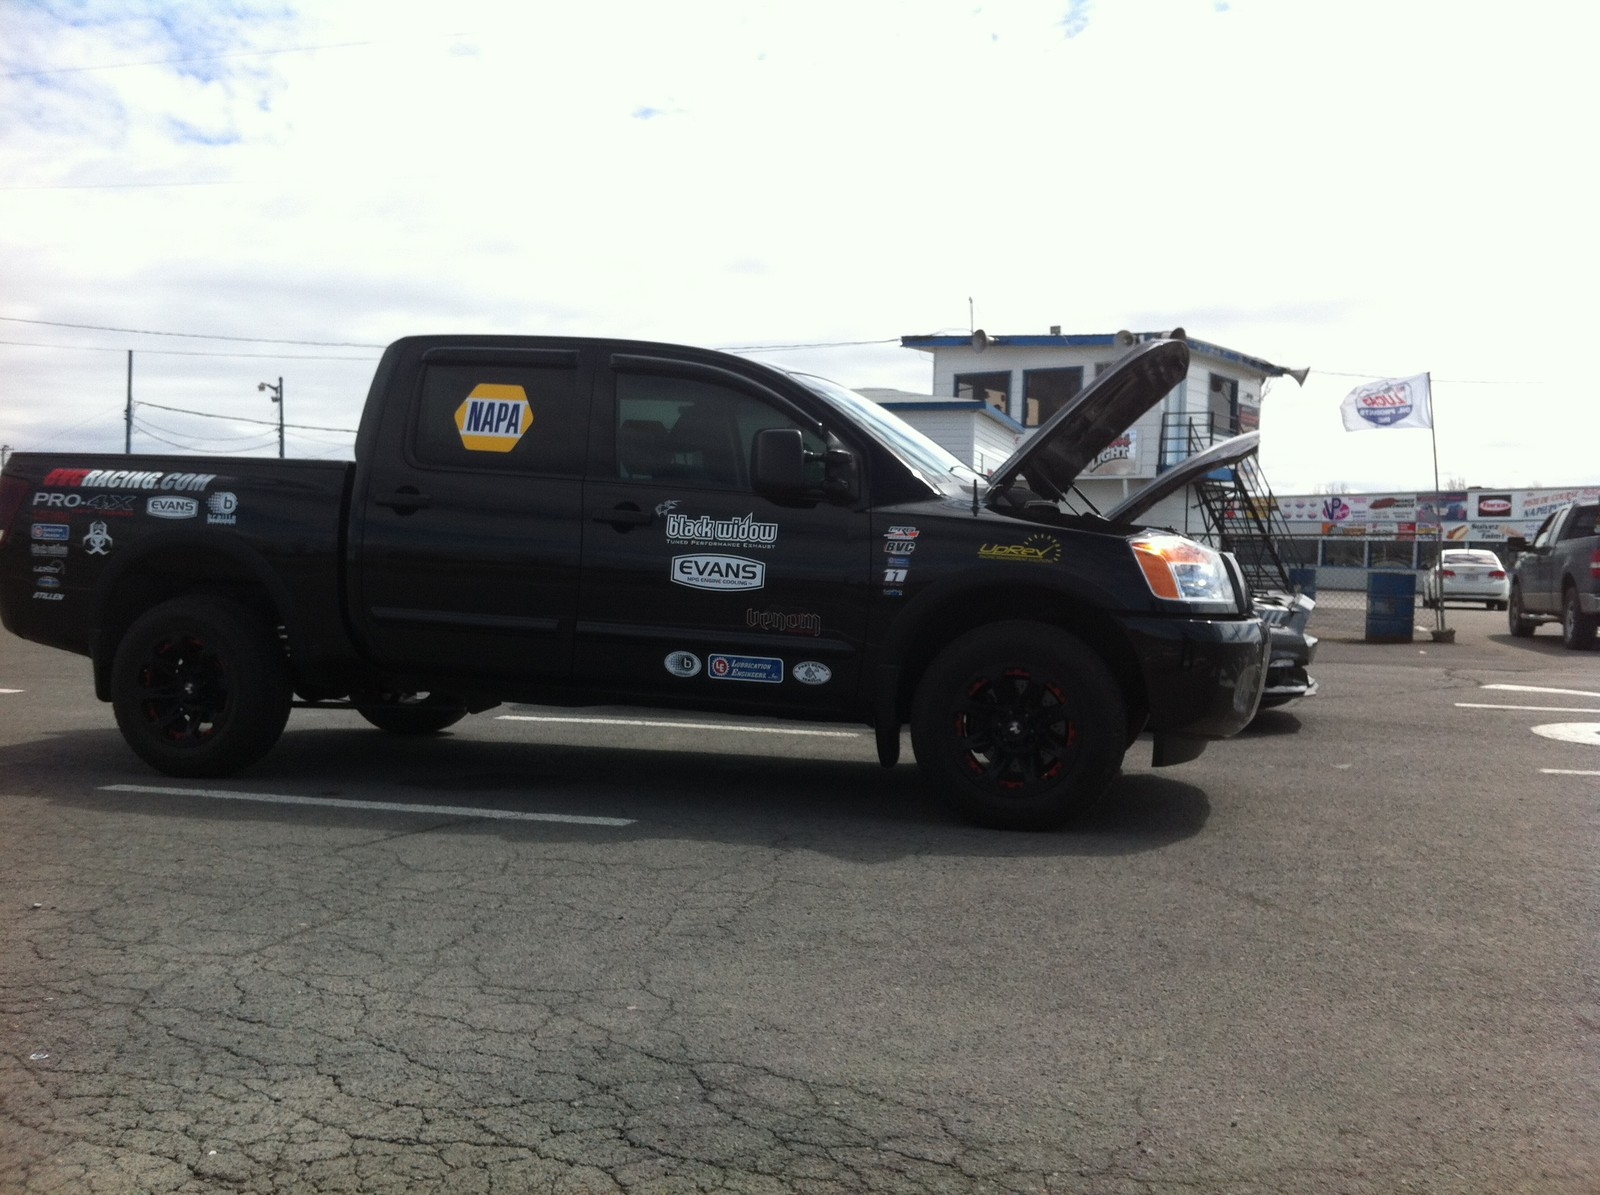 Galaxy Black 2010 Nissan Titan PRO 4 X CC 4X4  No Spray or boost